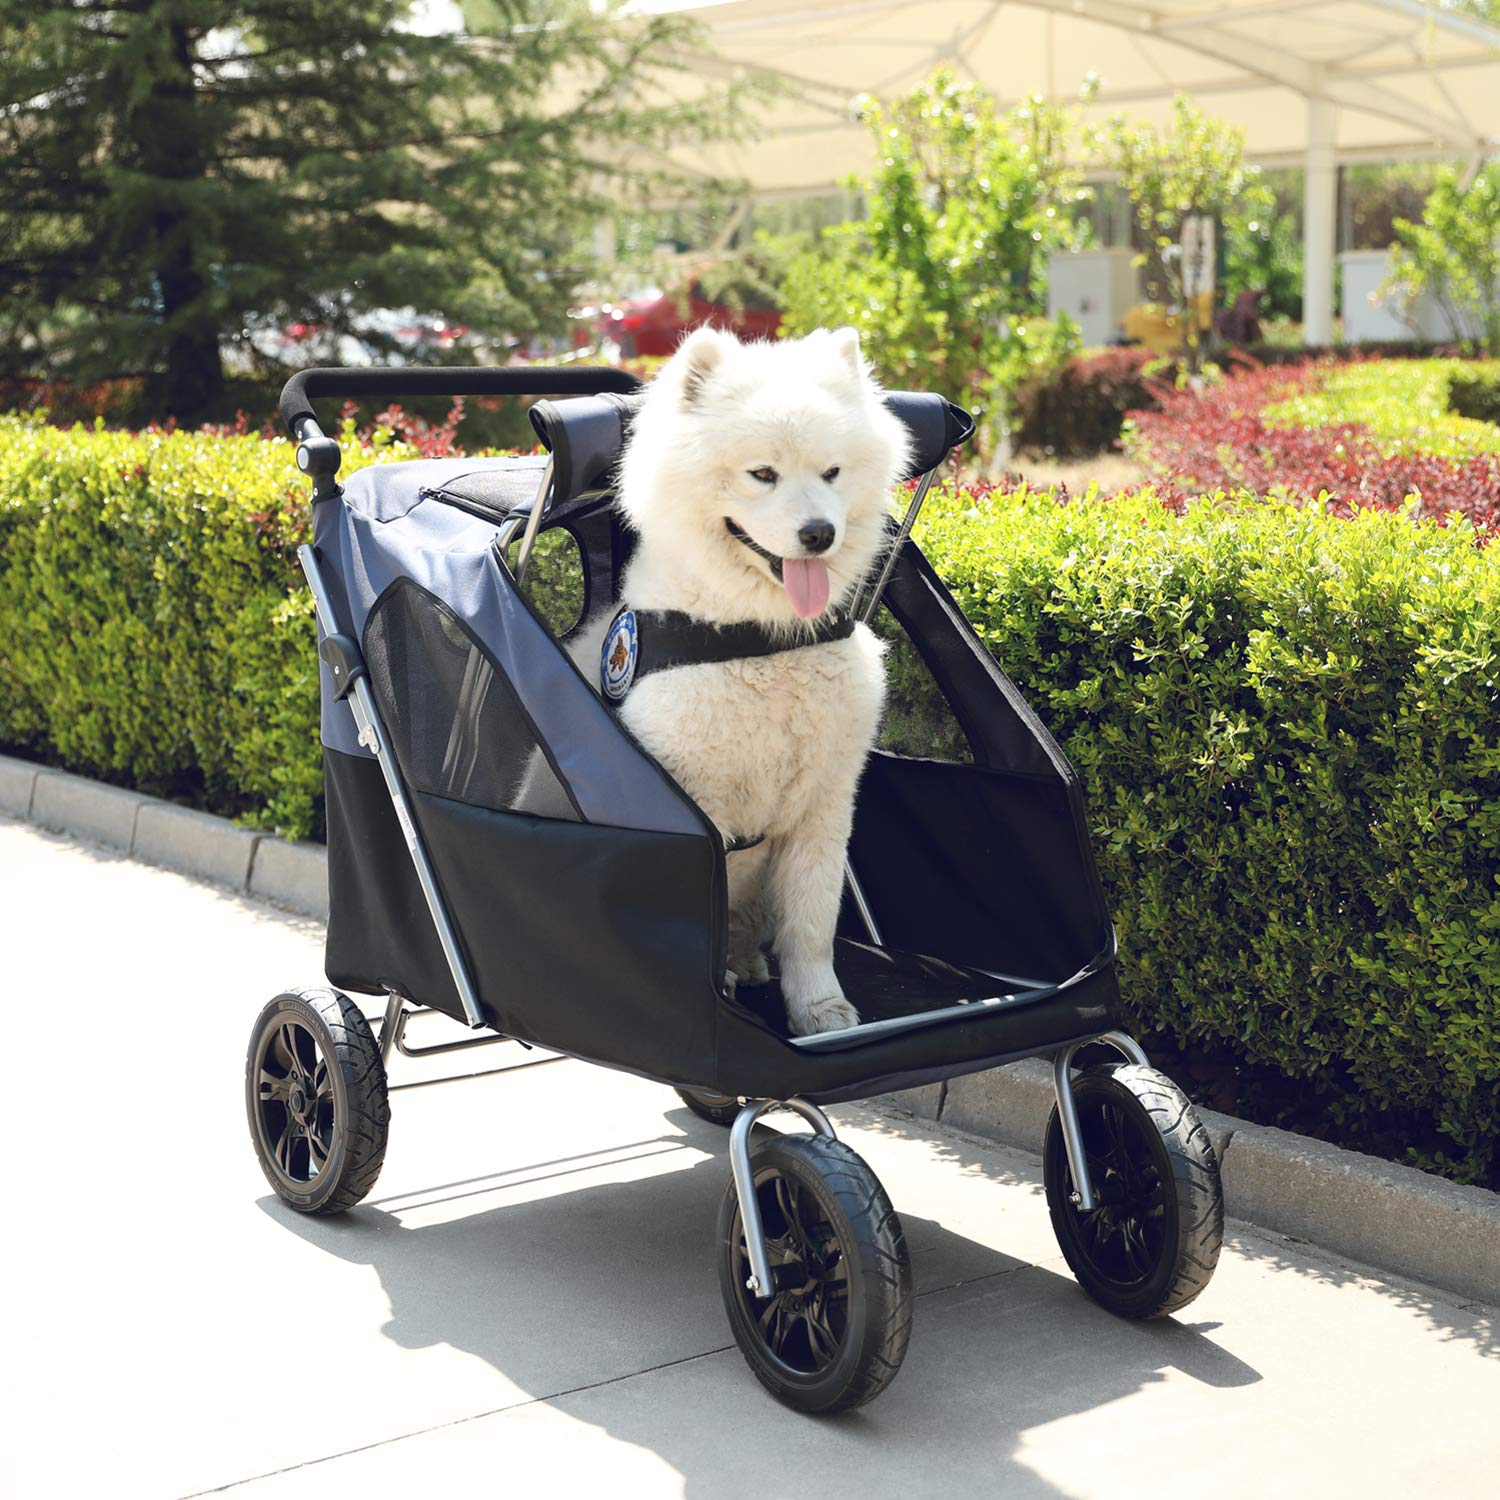 LAZY BUDDY Dog Stroller with 4 Rubber Wheels, Spacious Stroller for Big/Medium/Small Dogs, Foldable Traveling Carrier with Adjustable Handle for Dogs, Cats and Other Pets